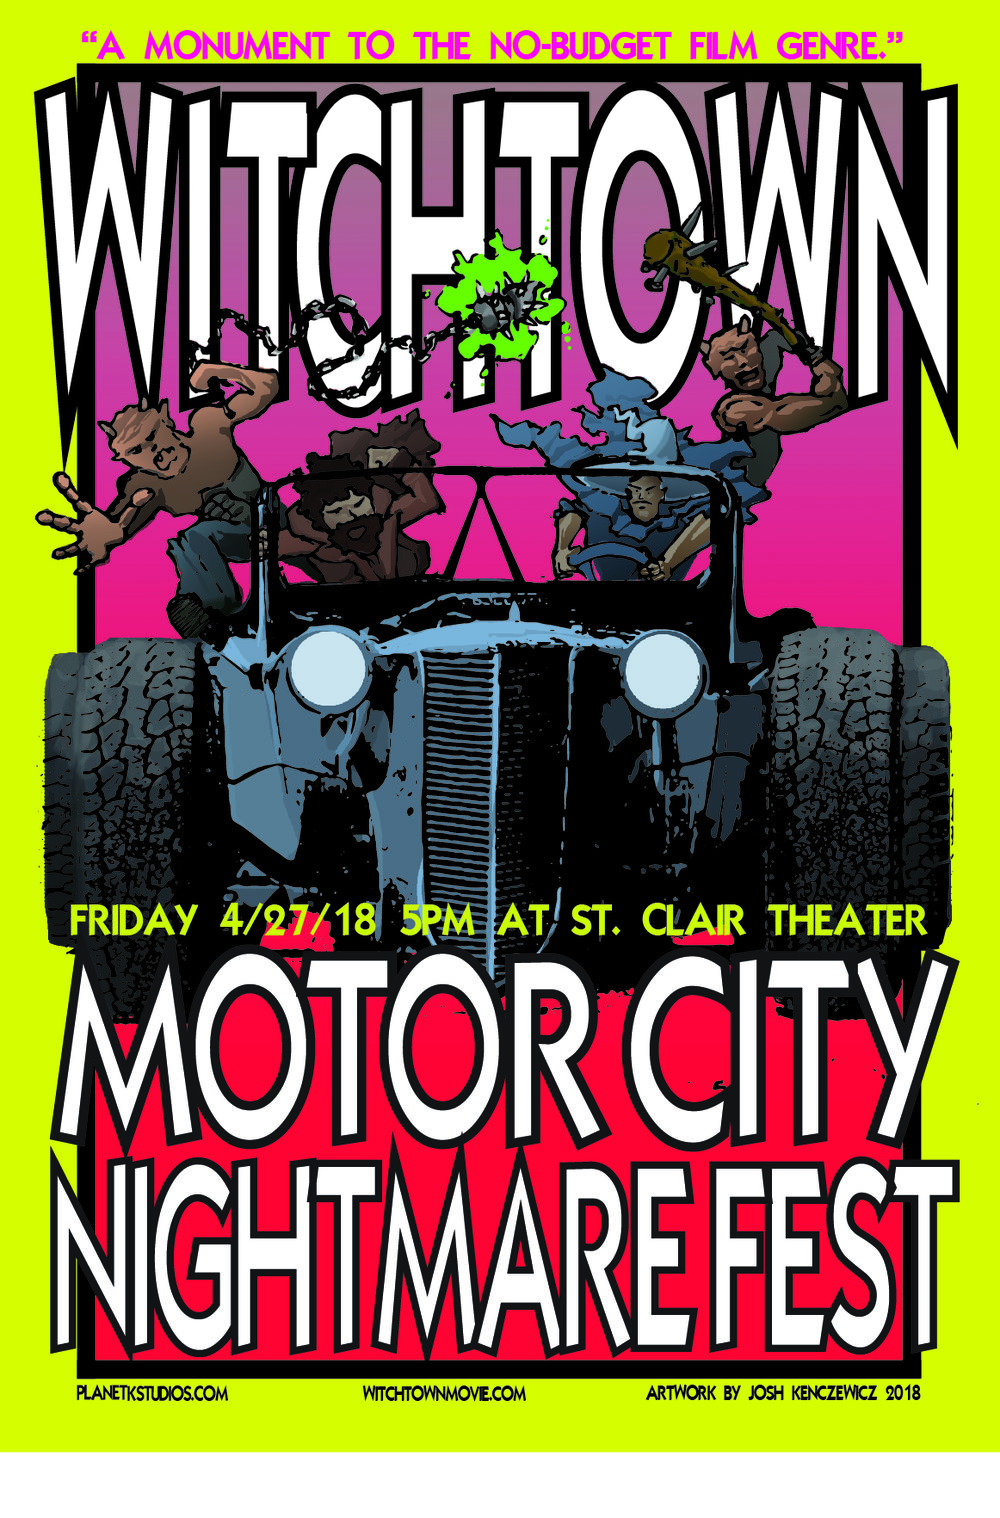 Witchtown Motor City Nightmare Fest